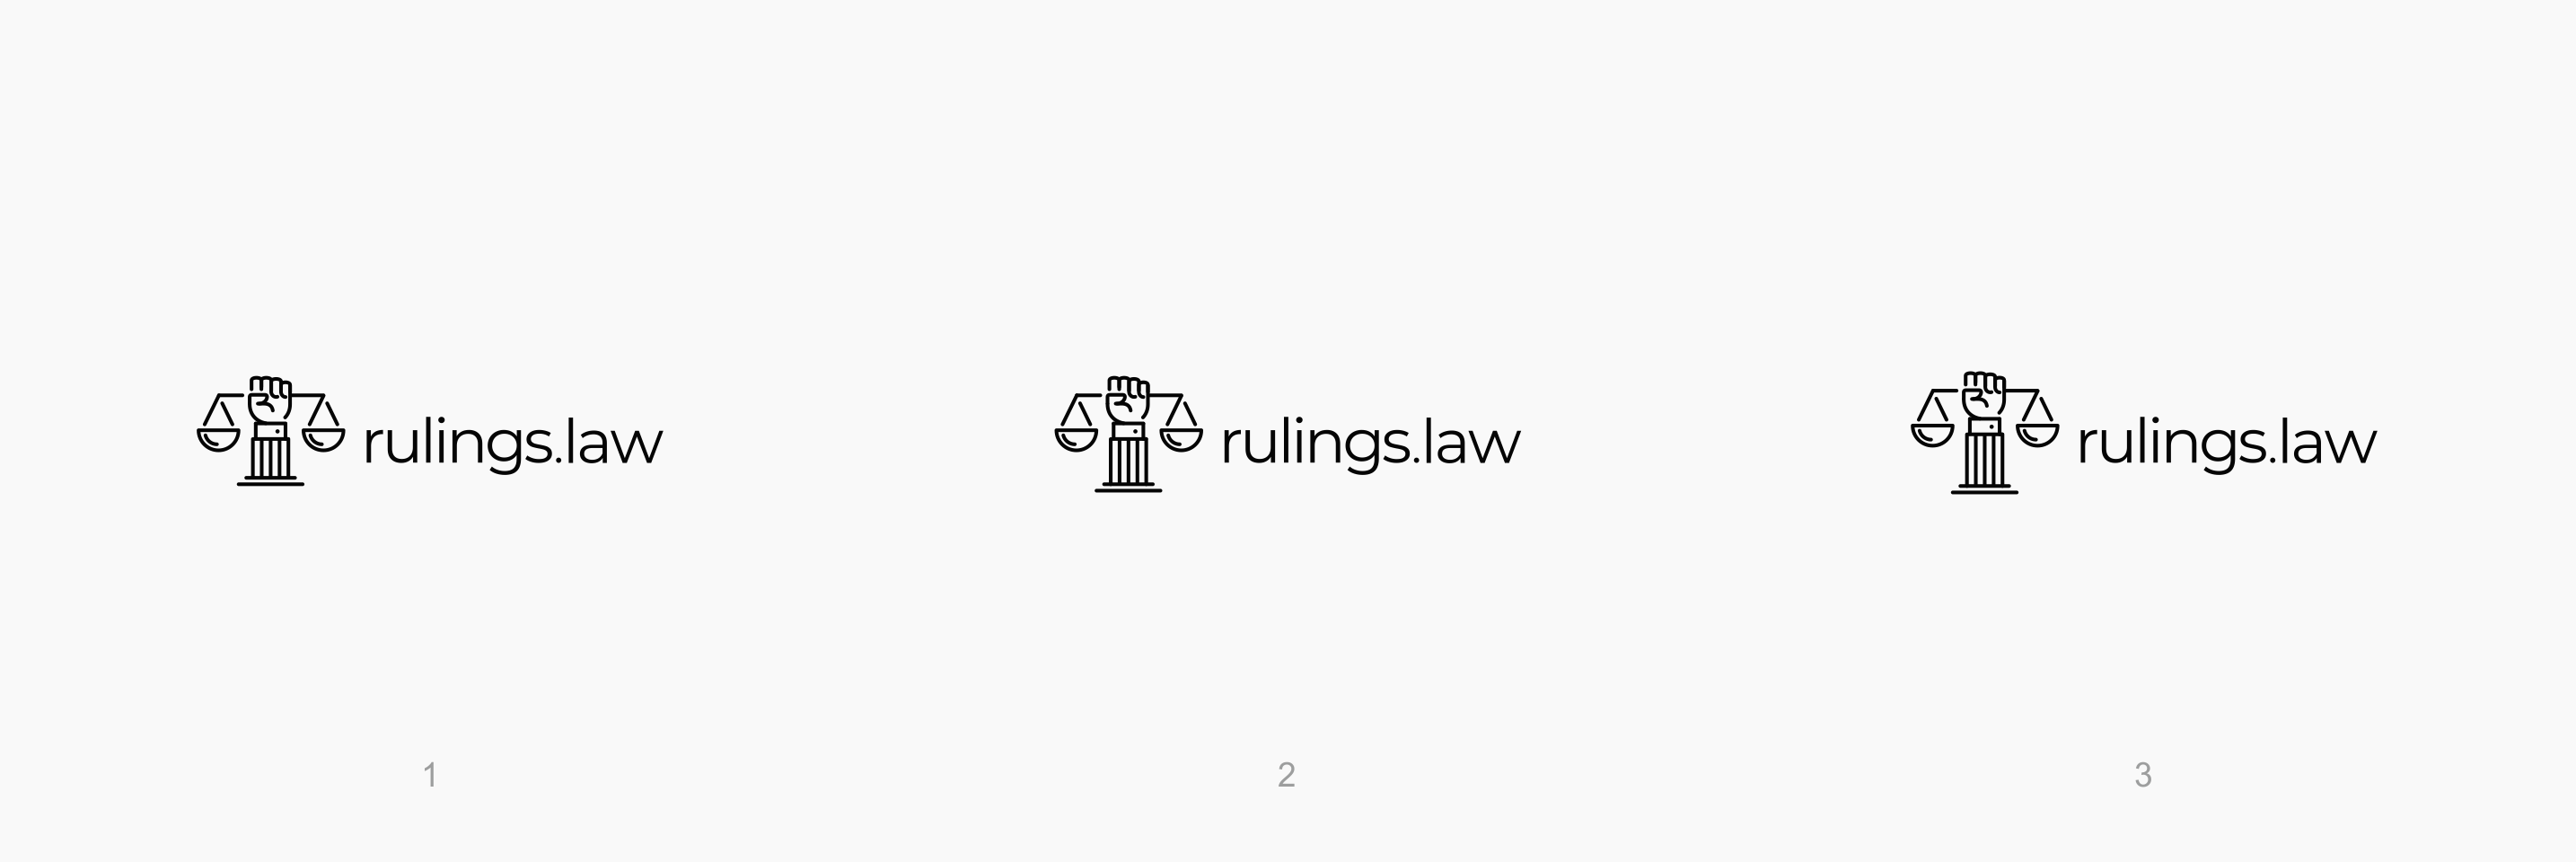 Legal tech startup needs logo